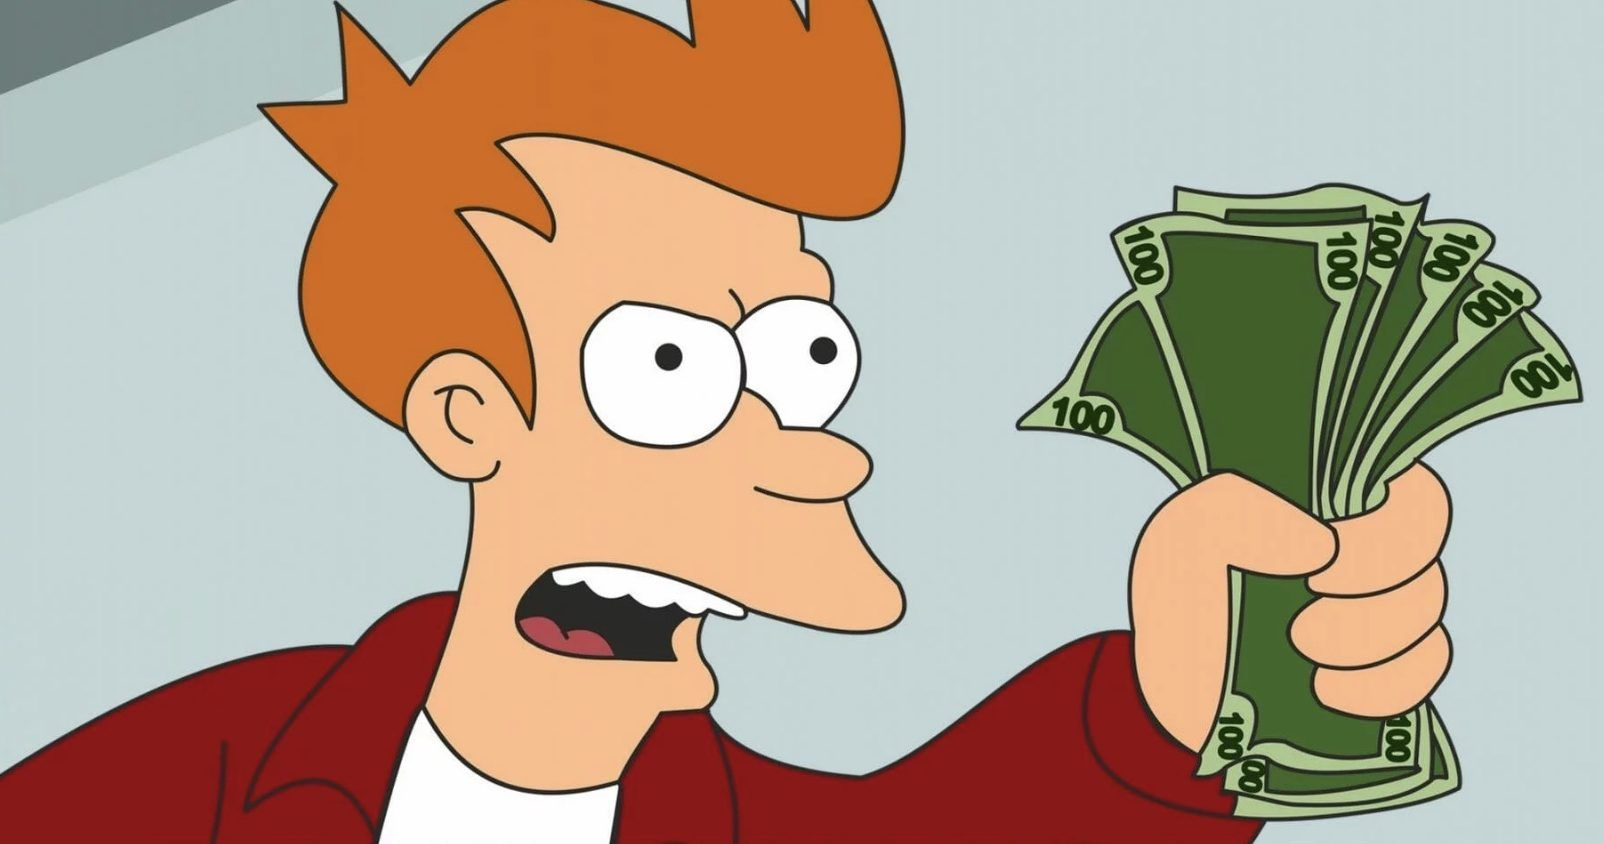 Futurama: The 10 Funniest Fry Quotes | ScreenRant